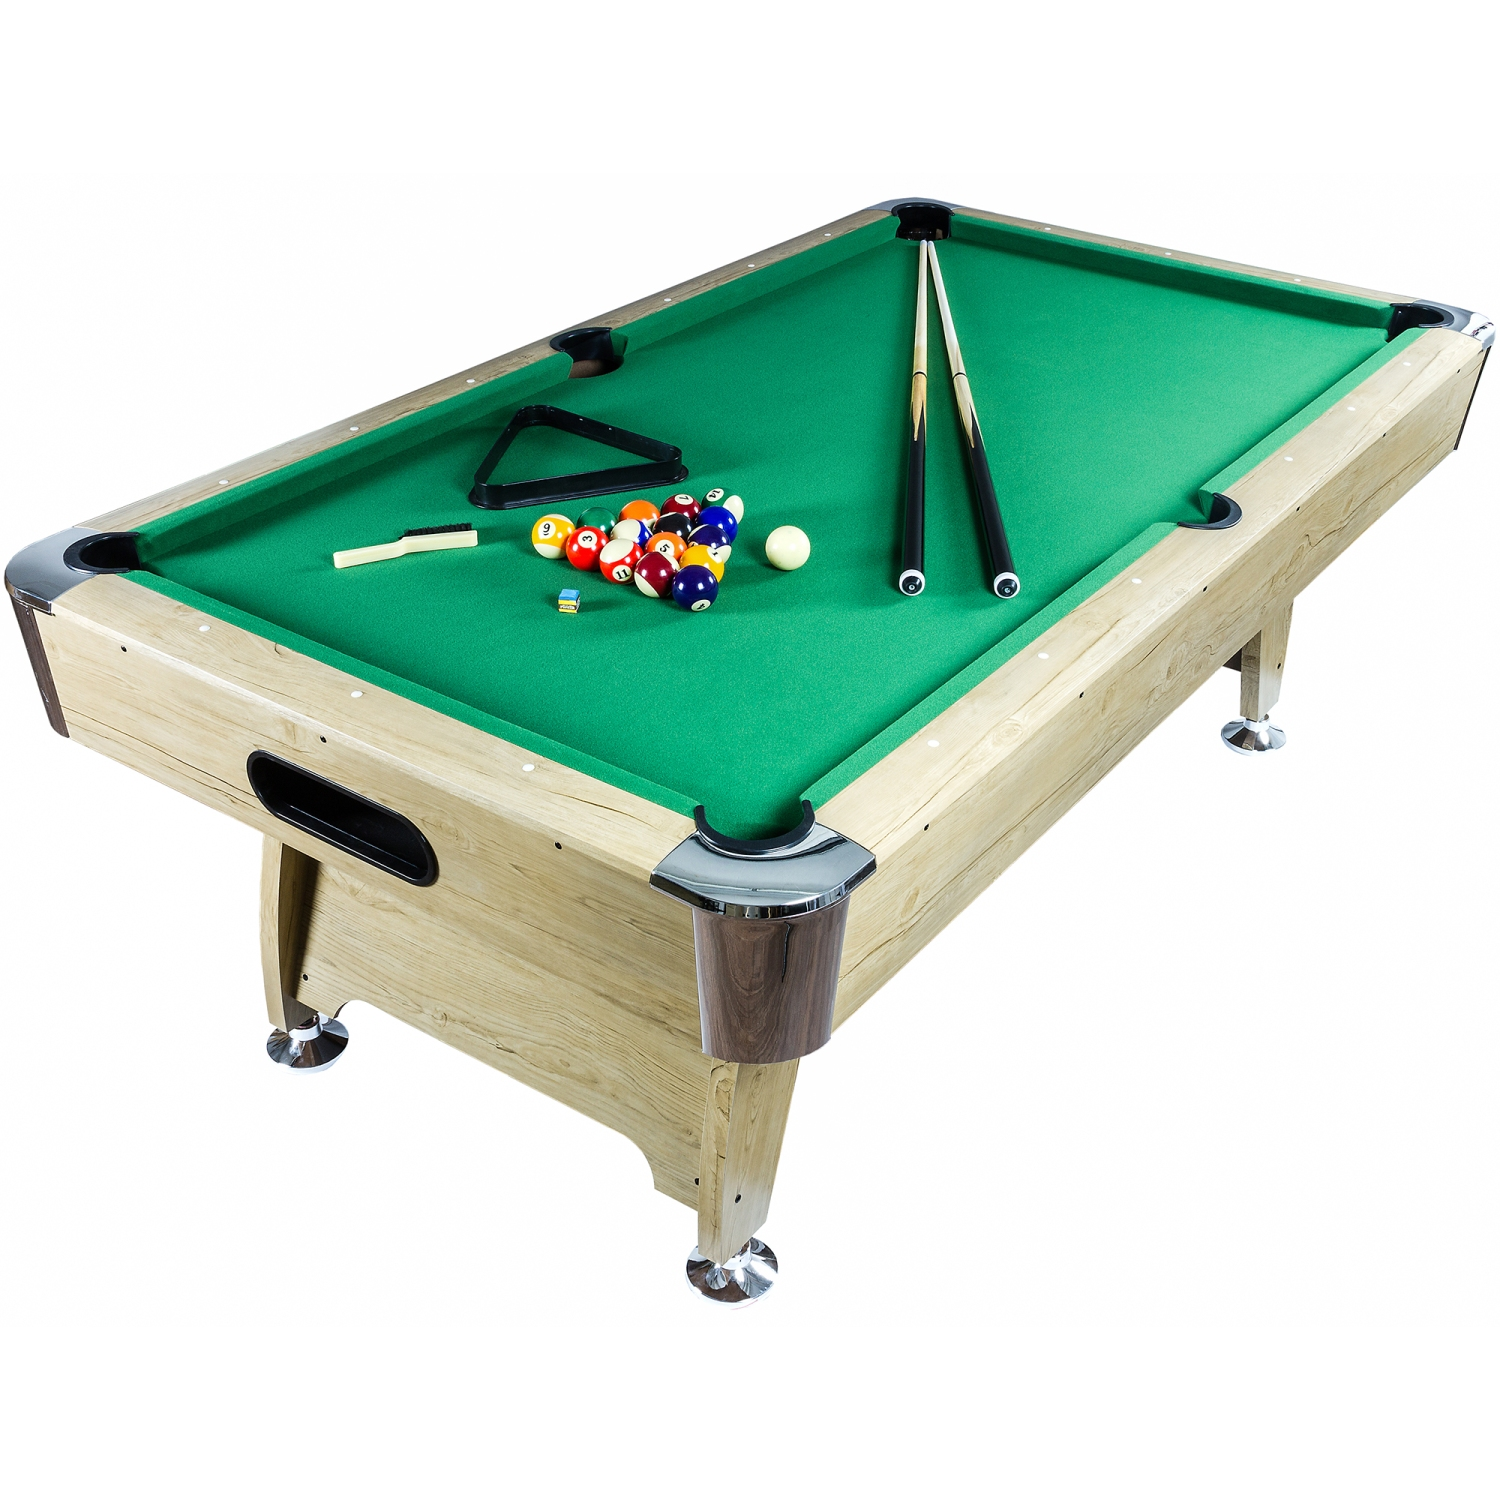 8ft billardtisch farbwahl pool billard billiardtisch for Pool holzdekor